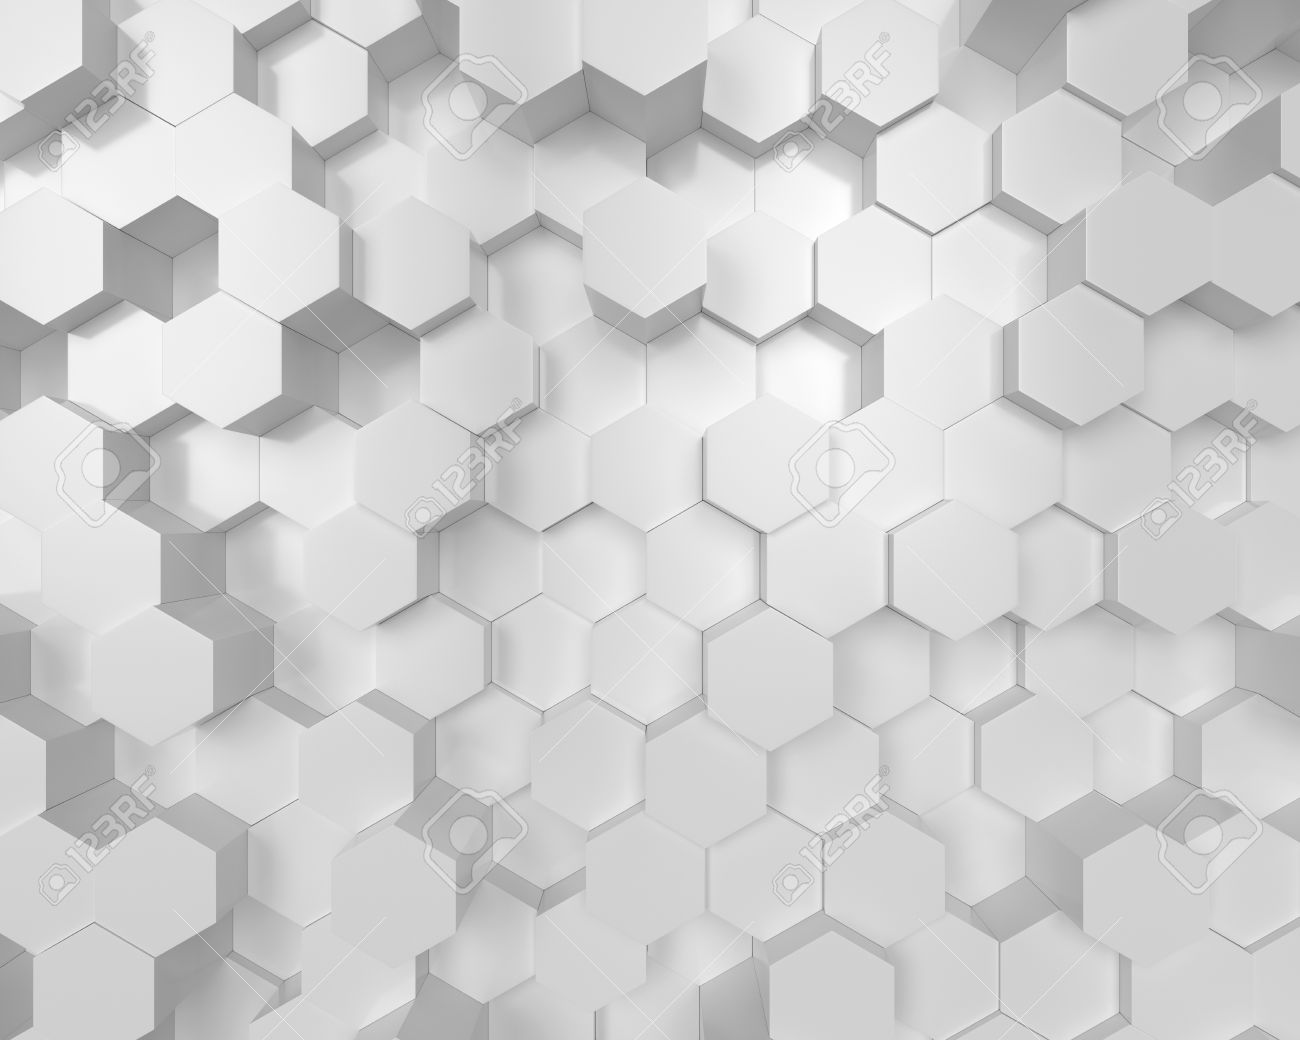 3d Polygon Abstract White Polygonal Geometric Hexagon Background Stock Photo Picture And Royalty Free Image Image 75793616 Download the hexagon, learning png on freepngimg for free. 3d polygon abstract white polygonal geometric hexagon background